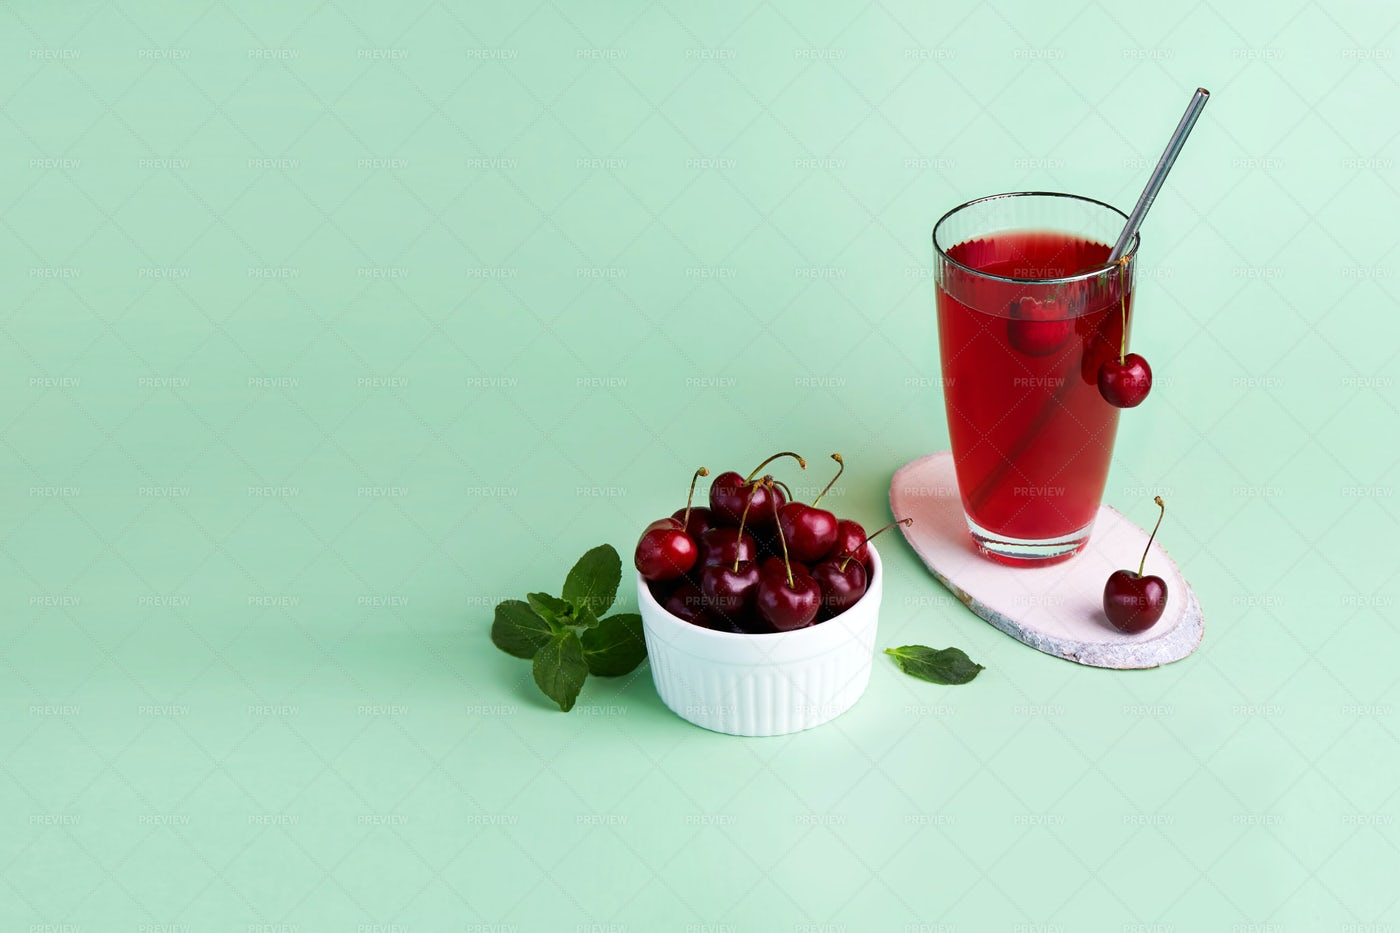 Cherry Compote And Berries: Stock Photos